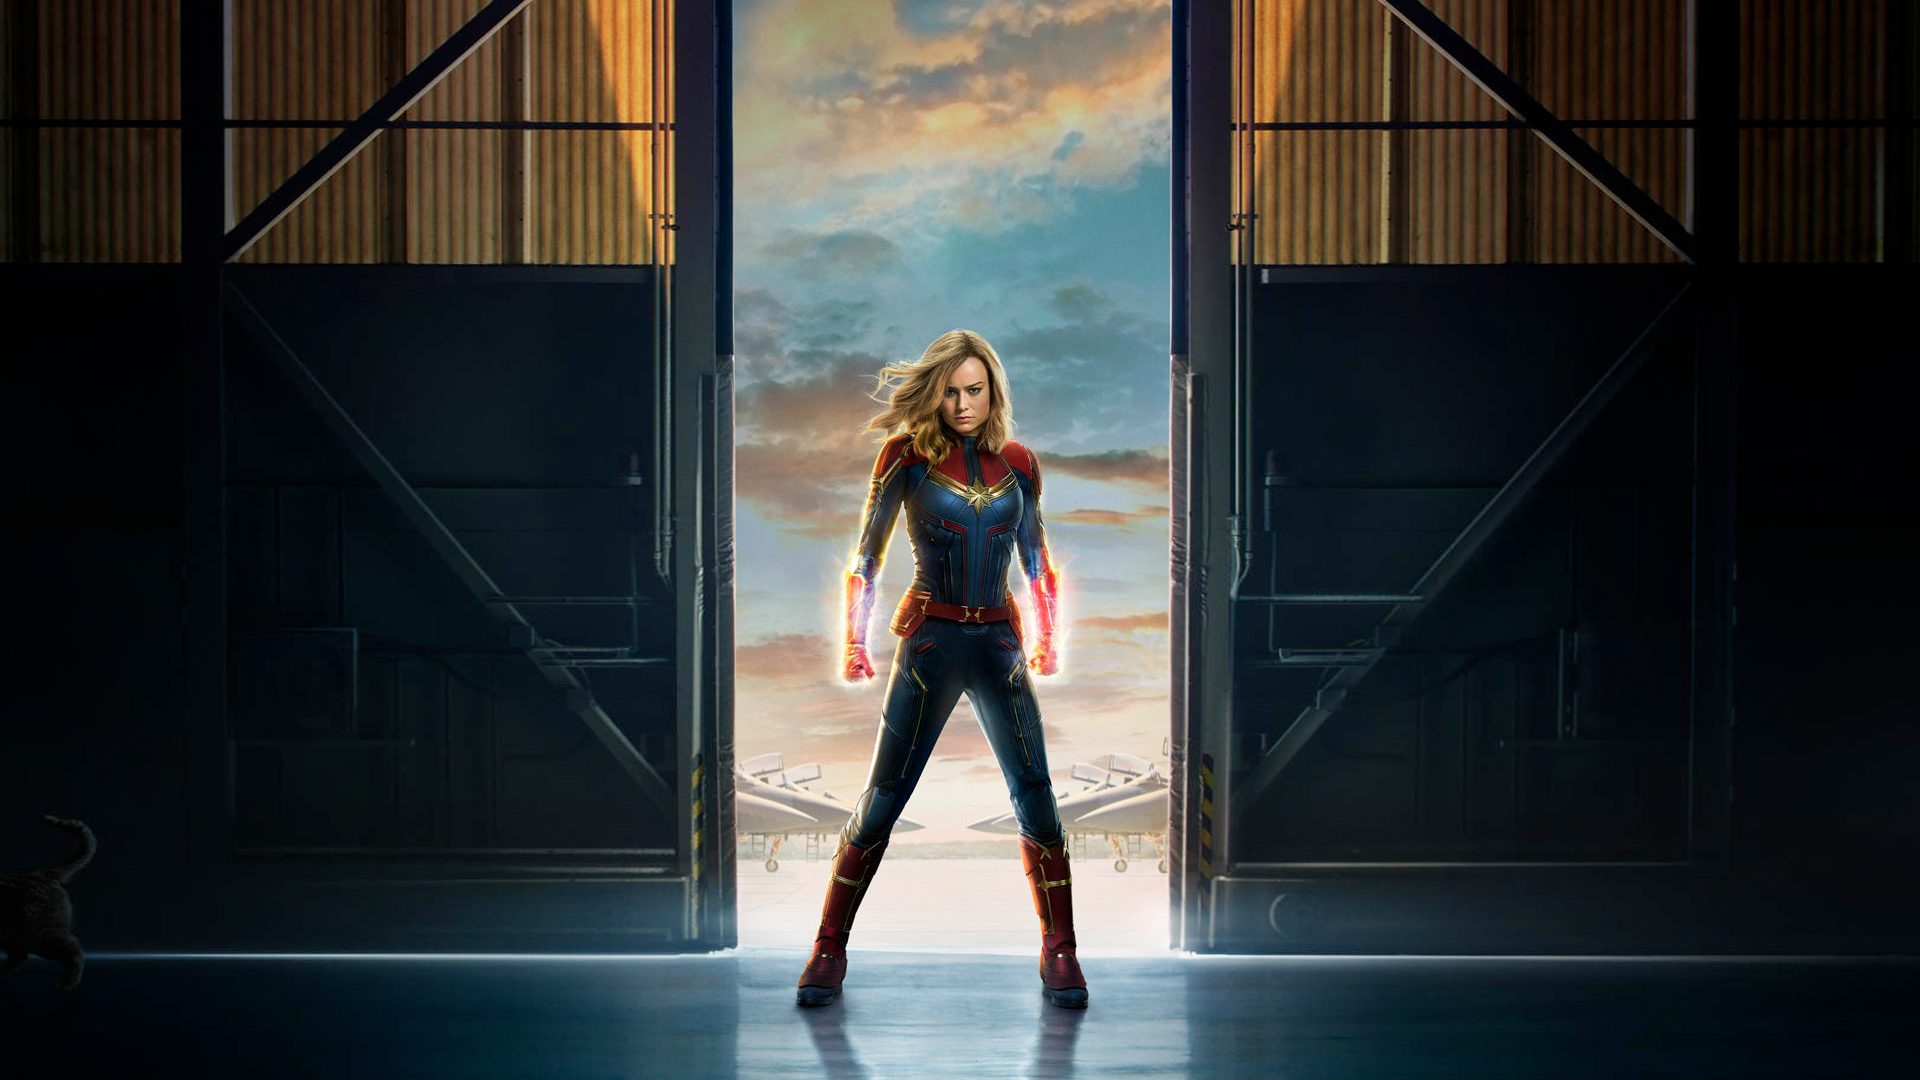 Movie Poster 2019: Captain Marvel Movie 2019 Offical Poster, HD Movies, 4k